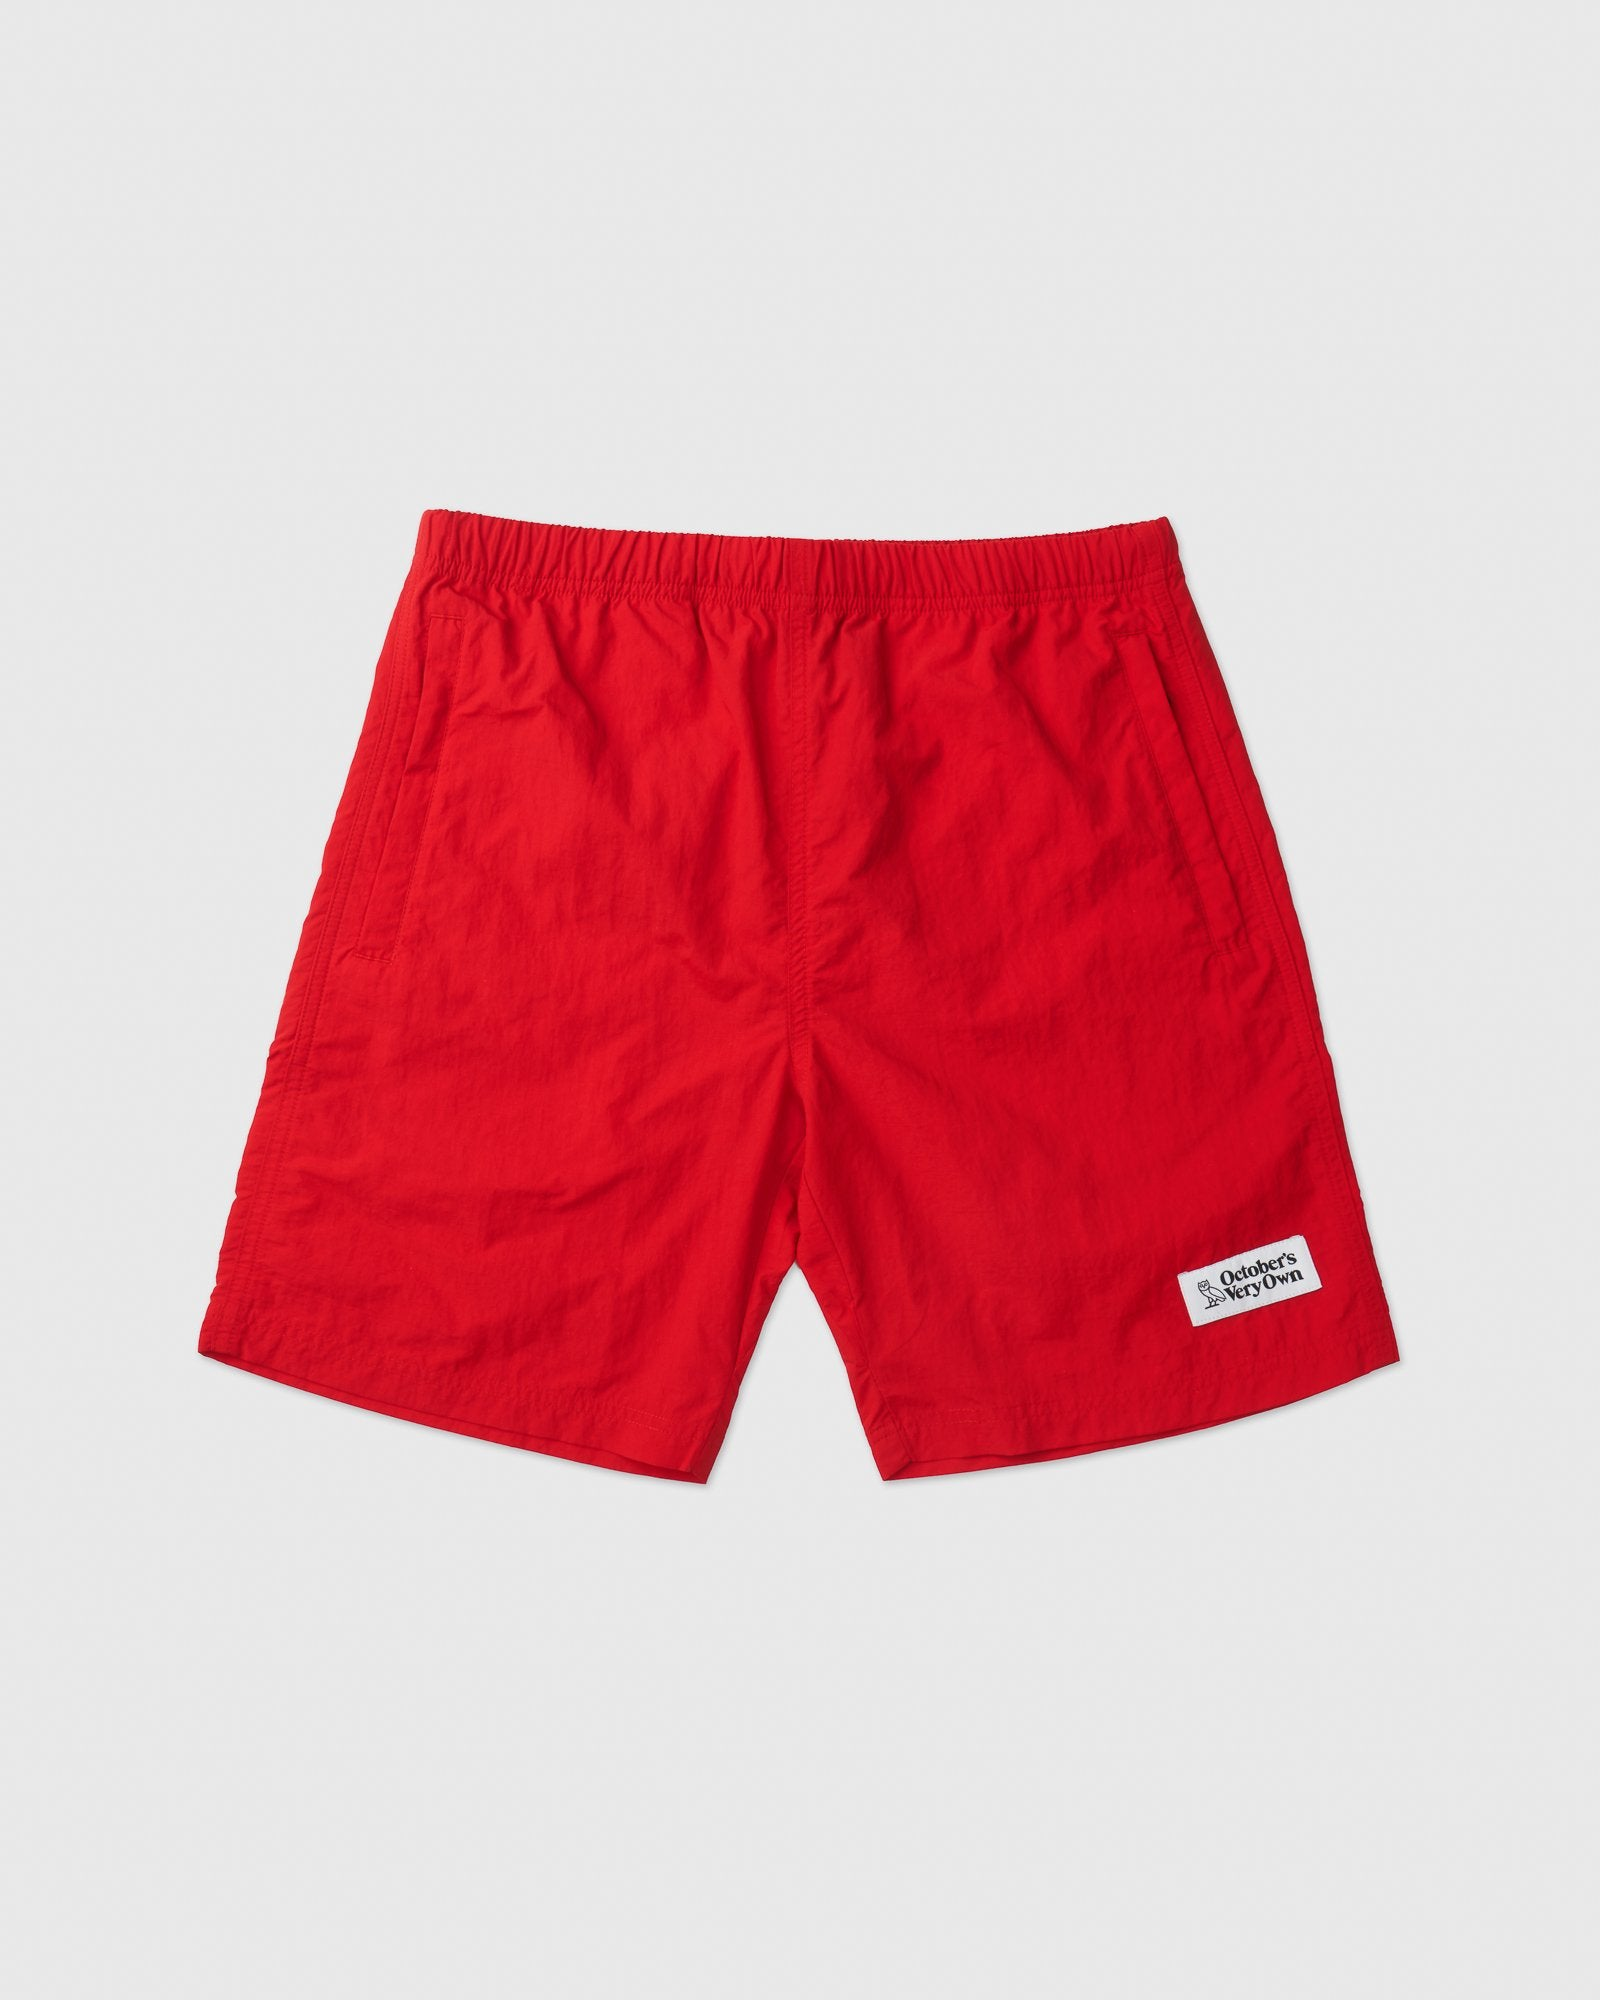 ALL PURPOSE NYLON SHORT - RED IMAGE #1